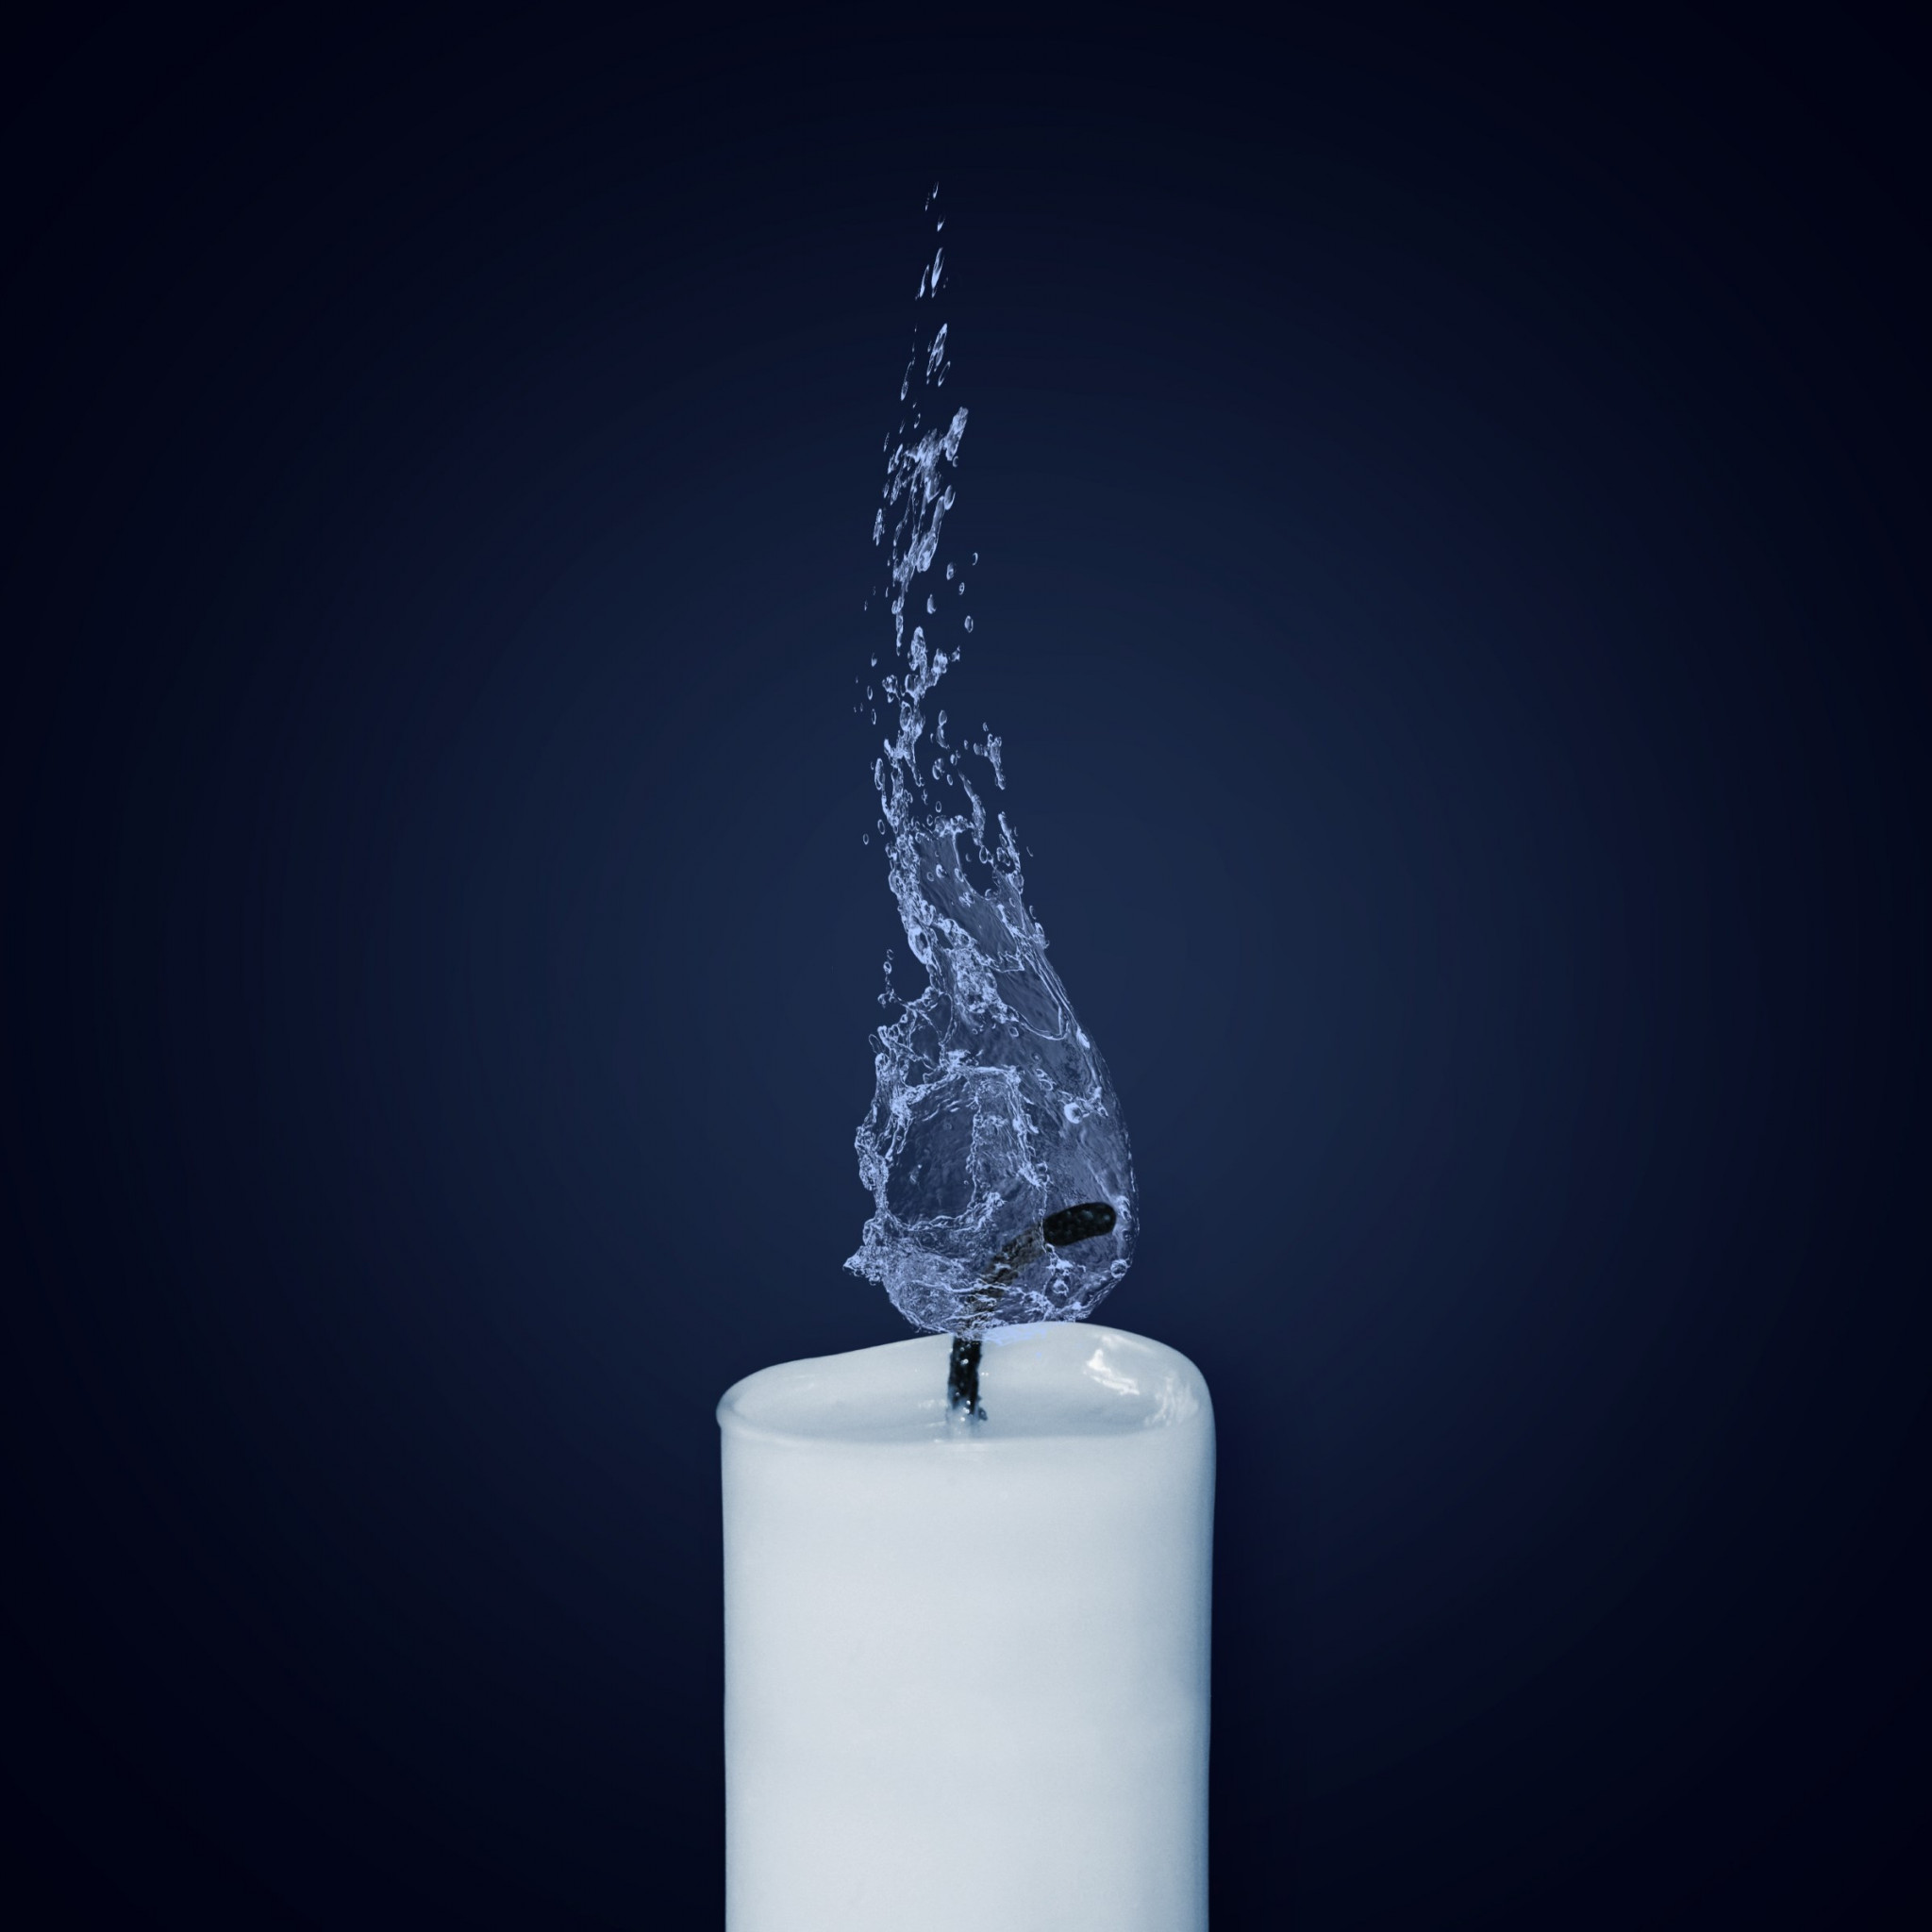 Water Flame. Candlelight | 2048x2048 wallpaper